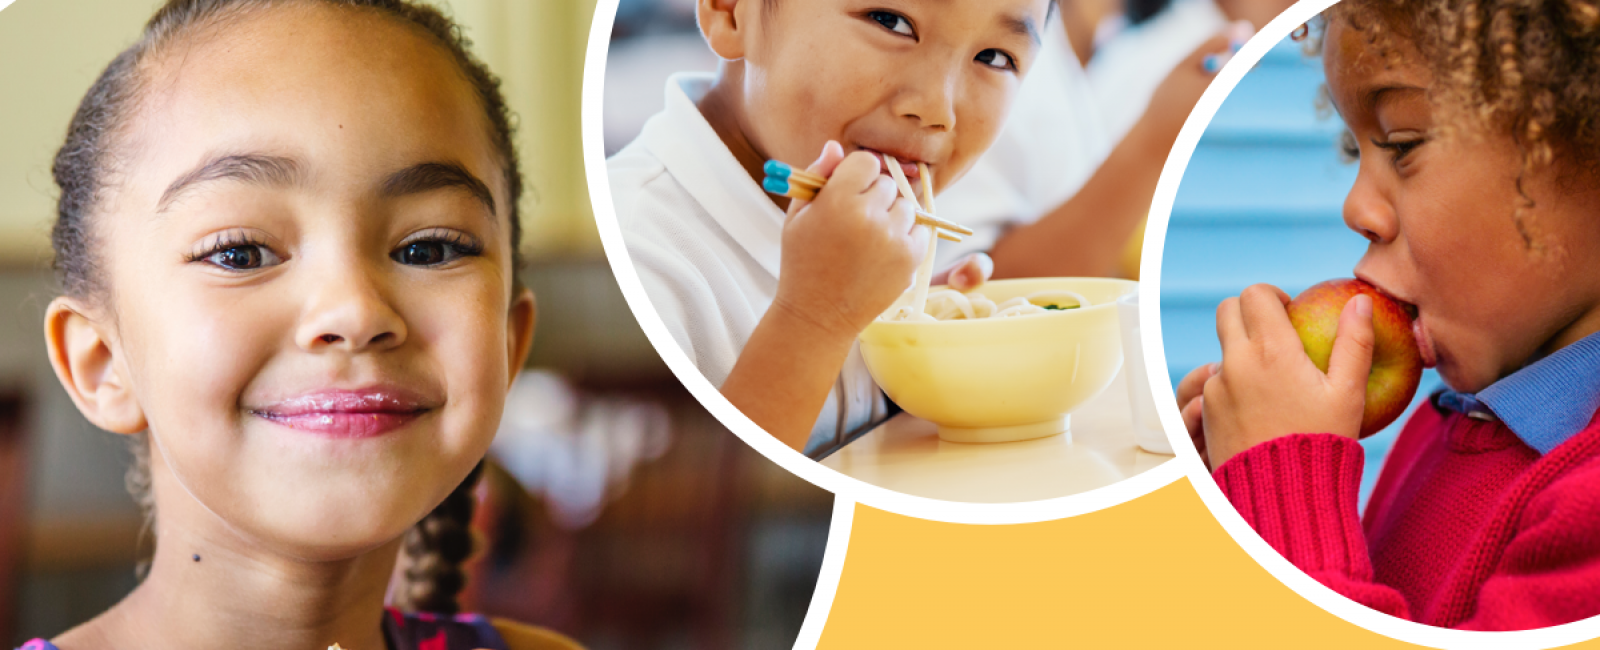 Donate Your Points to Help End Childhood Hunger #GivingTuesday